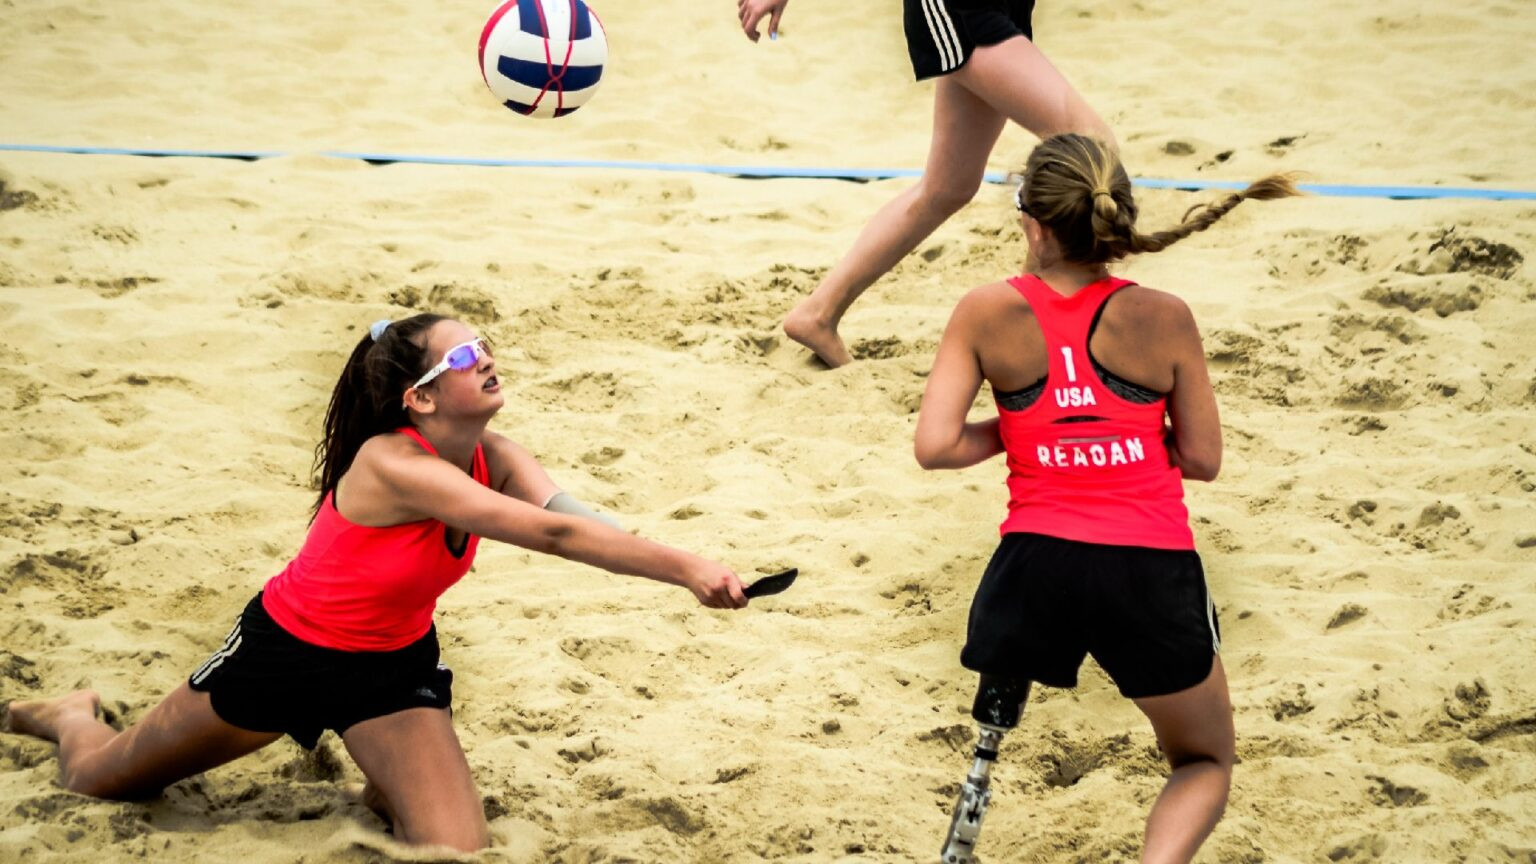 USA Volleyball beach ParaVolley programme boosted by $100,000 donation